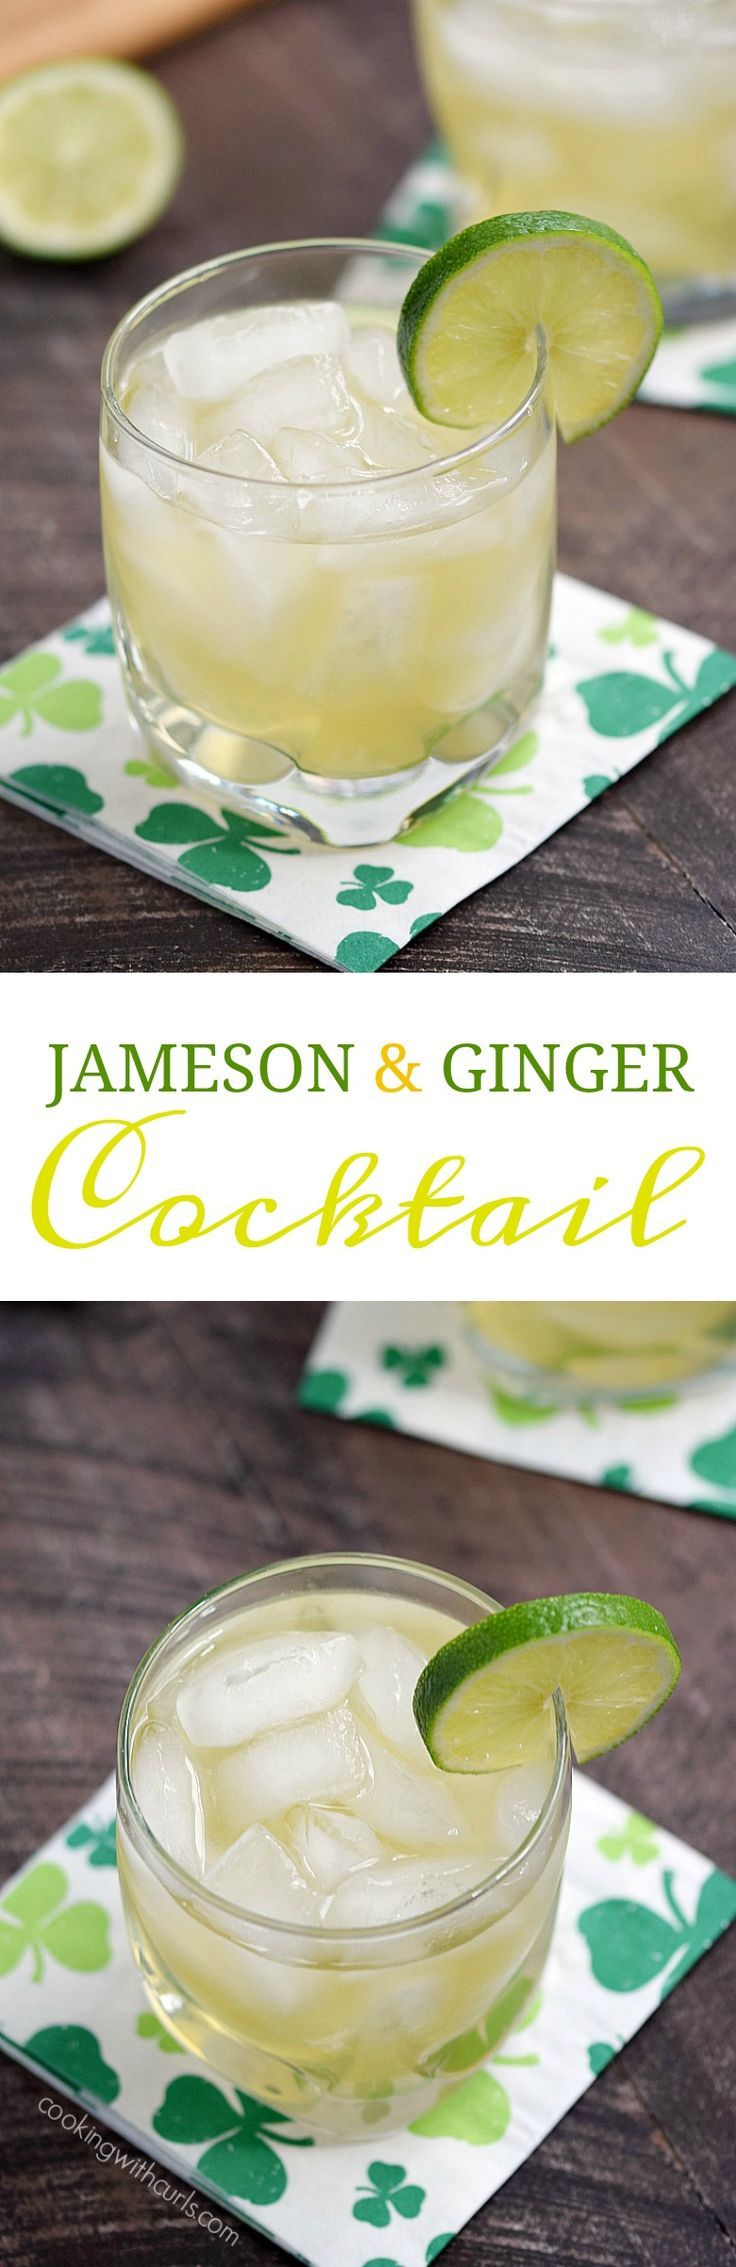 100 cocktail recipes on pinterest bartender drinks for Mixed drink with jameson